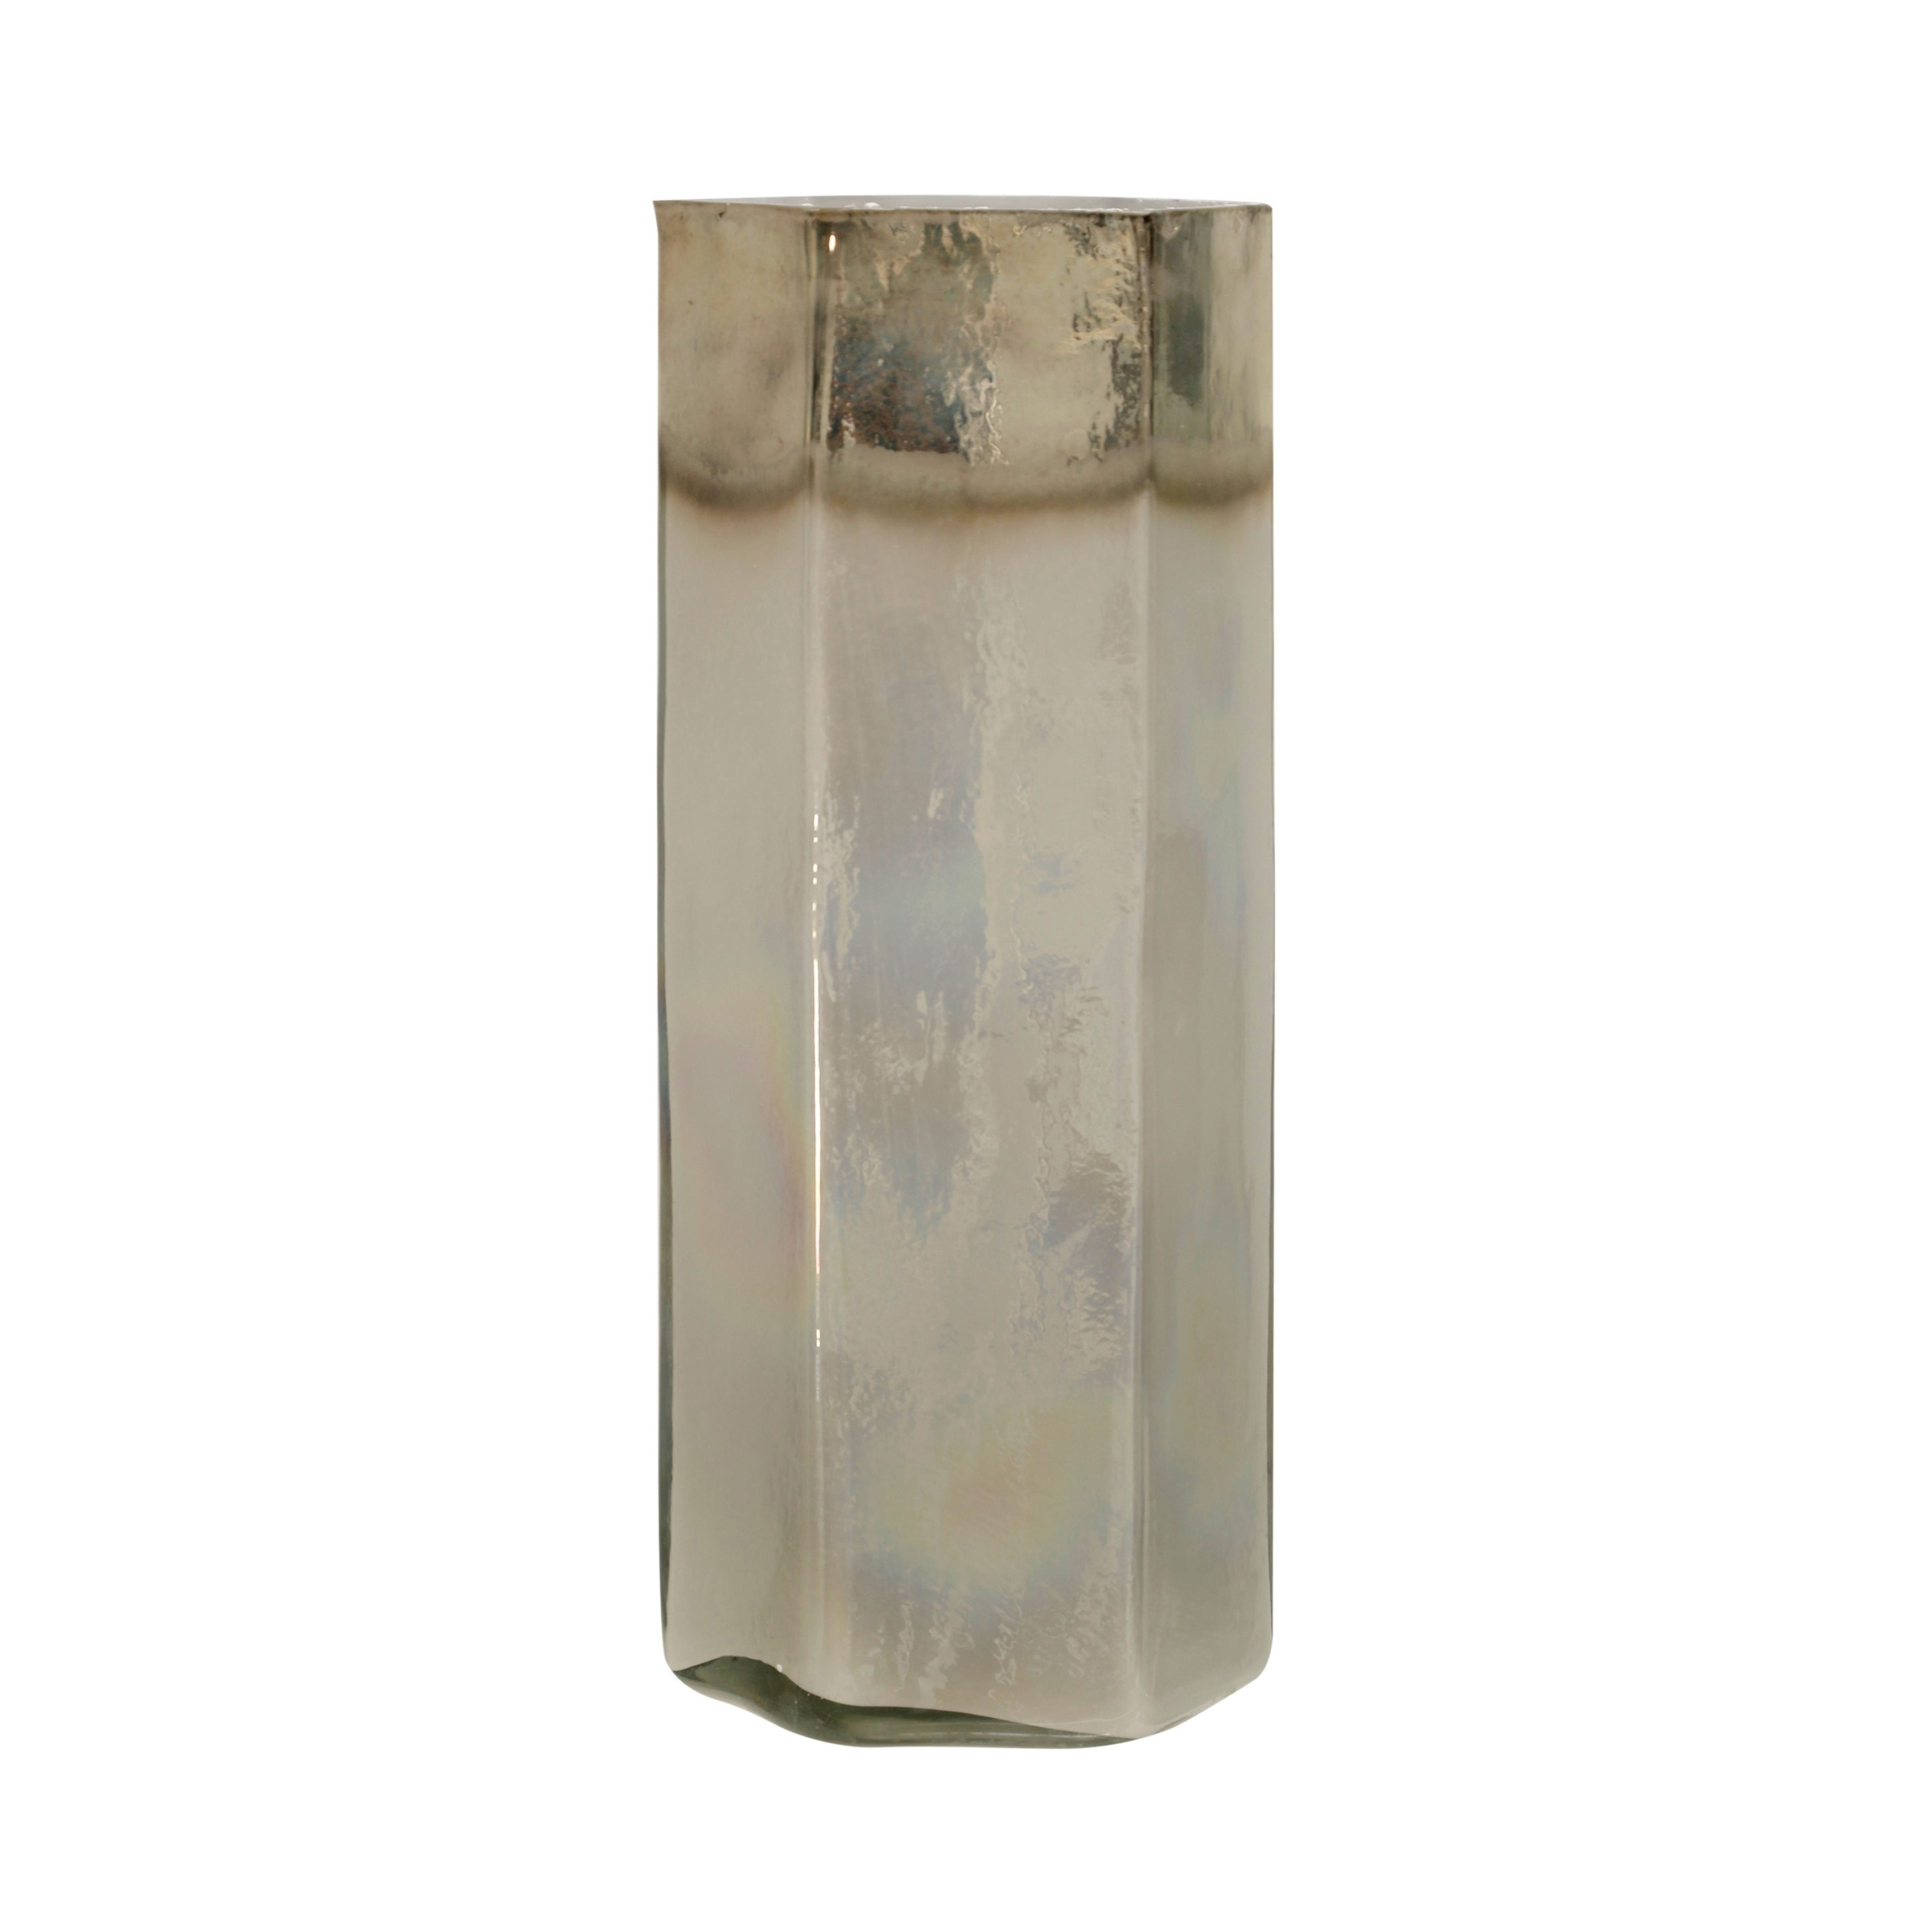 Iridescent Hexagonal 18-inch Glass Cylinder Vase with Gold Banded Top